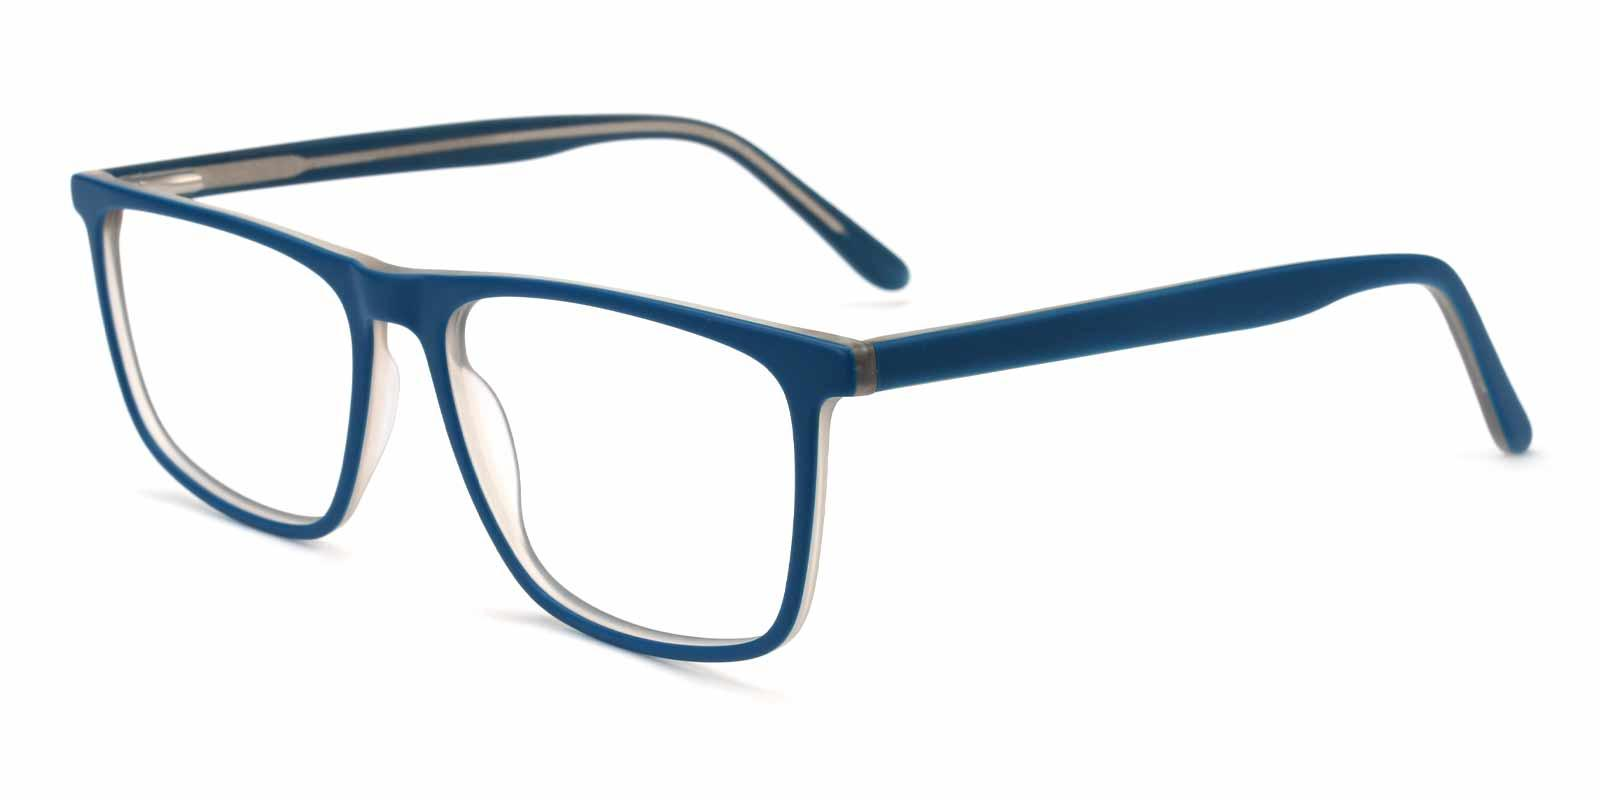 Barbar-Blue-Rectangle-Acetate-Eyeglasses-additional1